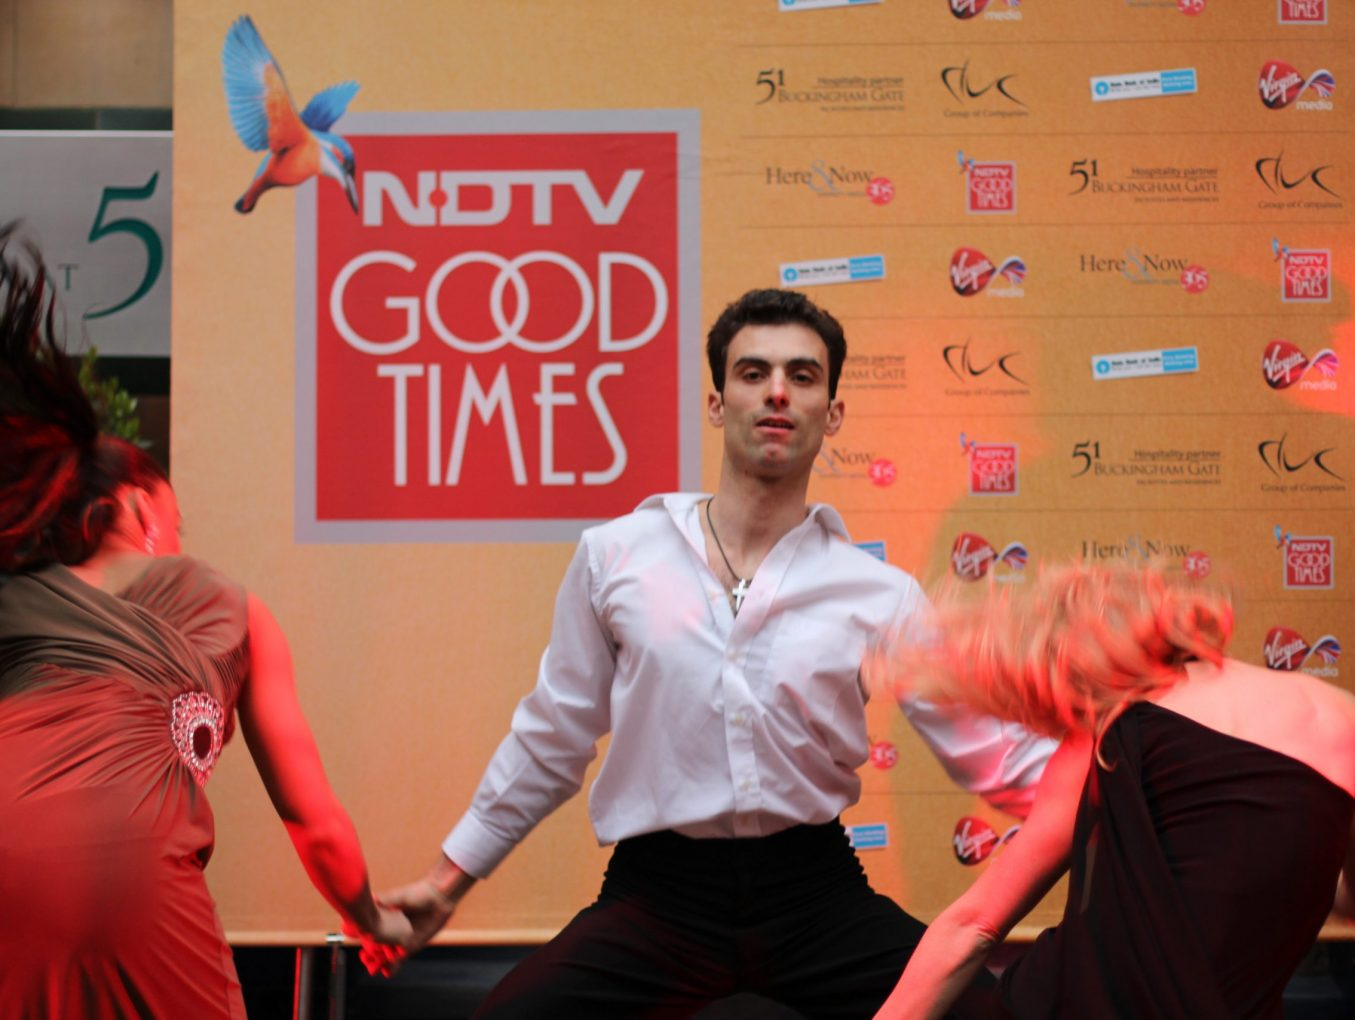 The Grand NDTV Good Times Launch